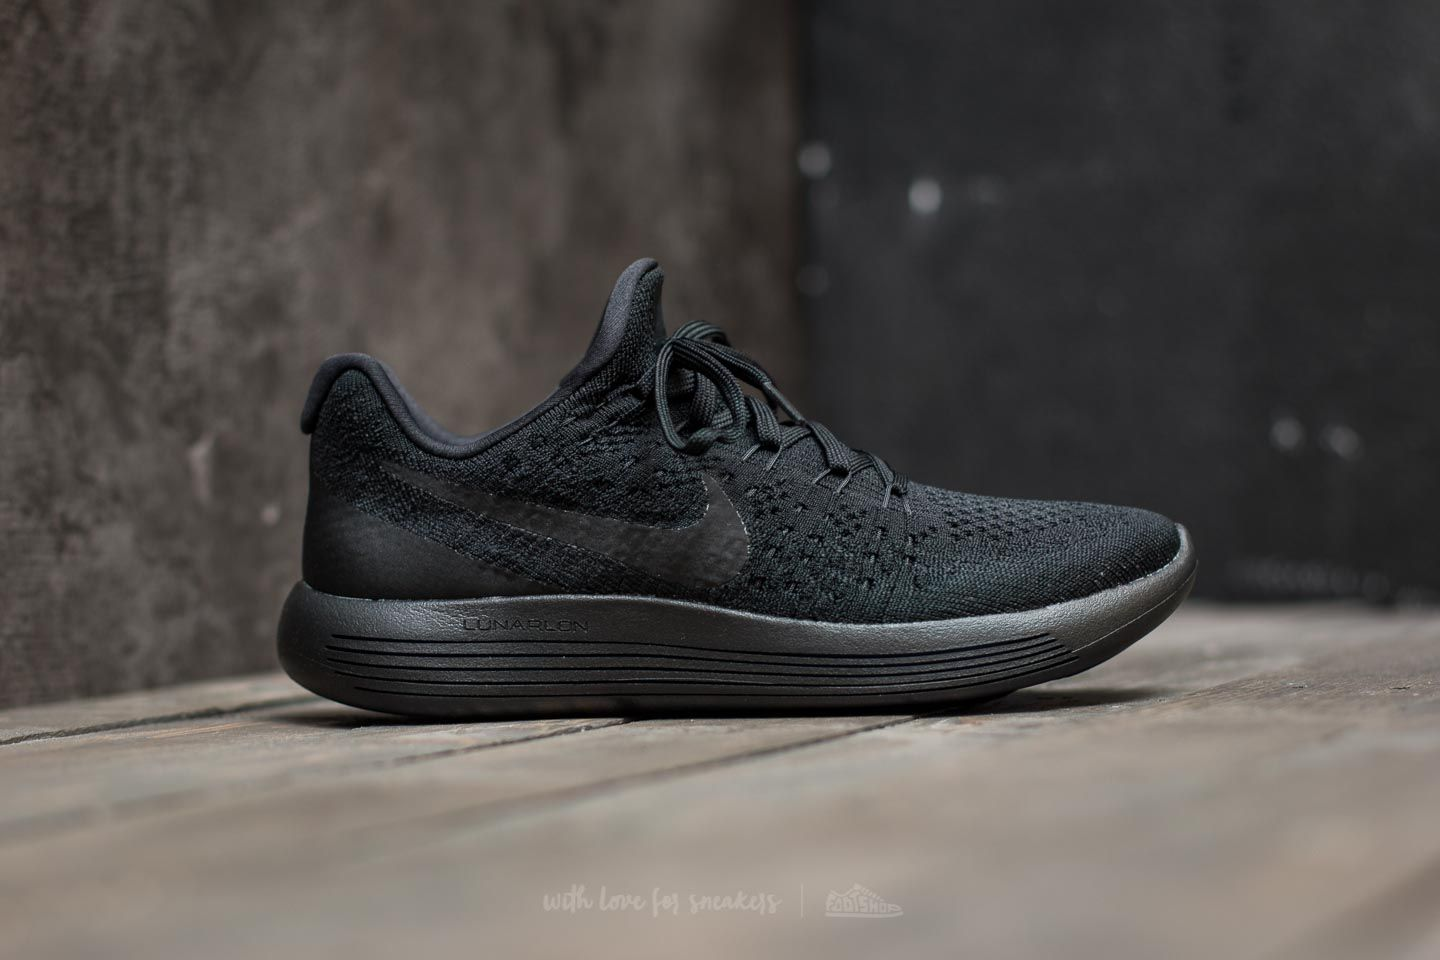 innovative design 516c5 154d6 Nike W Lunarepic Low Flyknit 2 Black  Black-Racer Blue at a great price